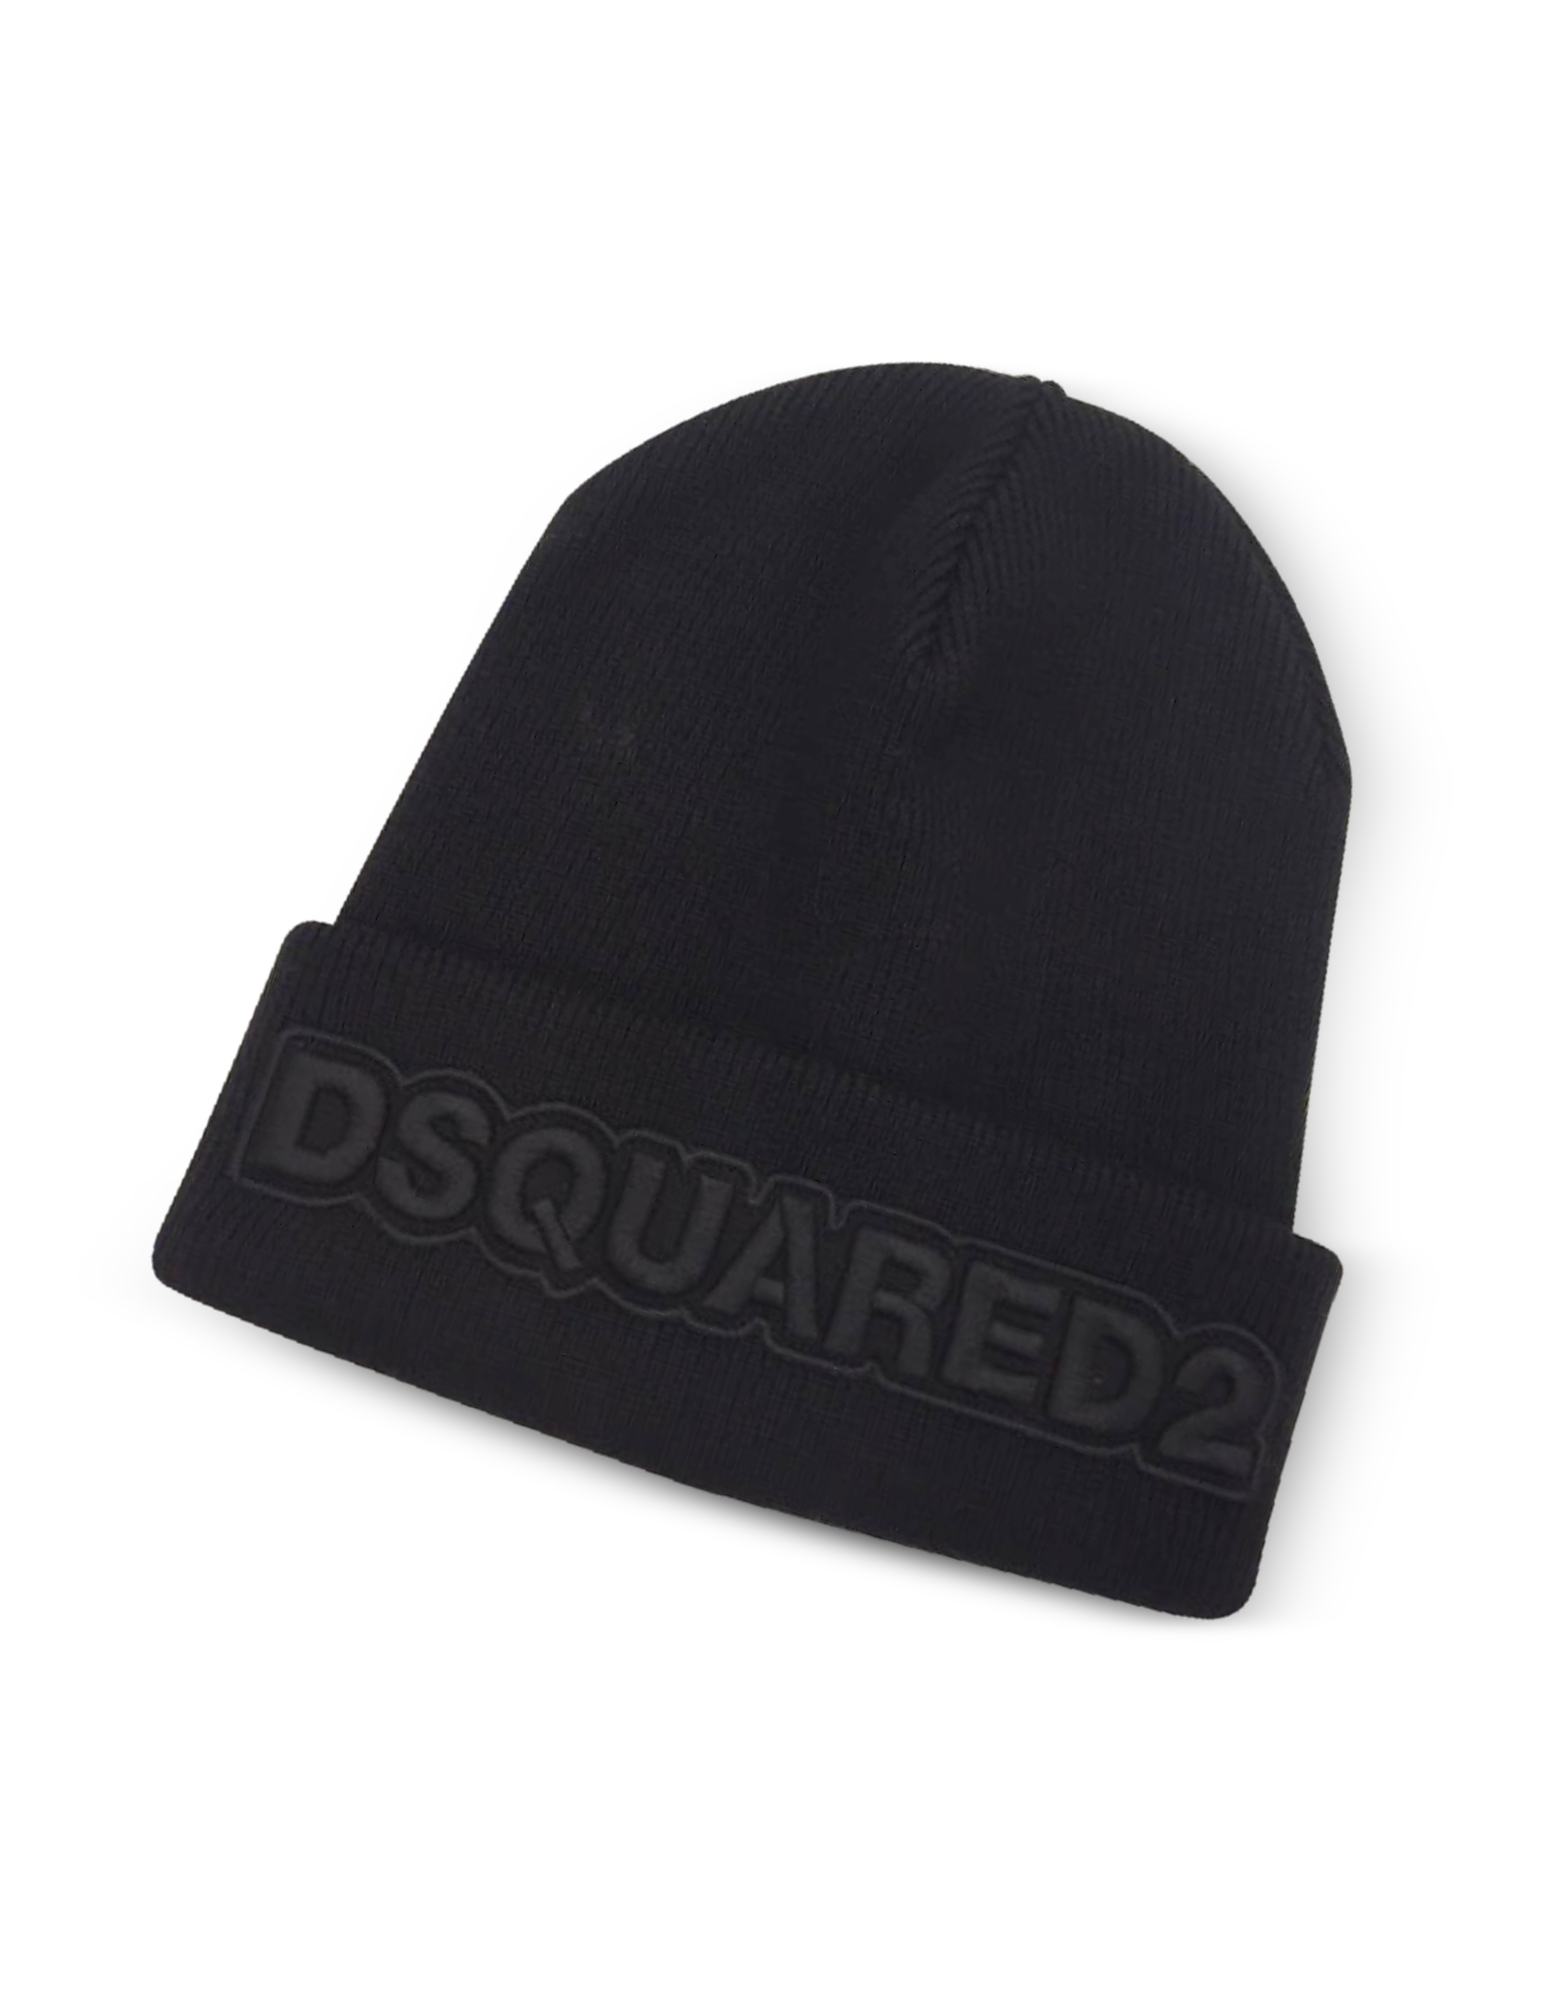 DSquared2 Men's Hats, Embroidered Logo Signature Wool Knit Hat